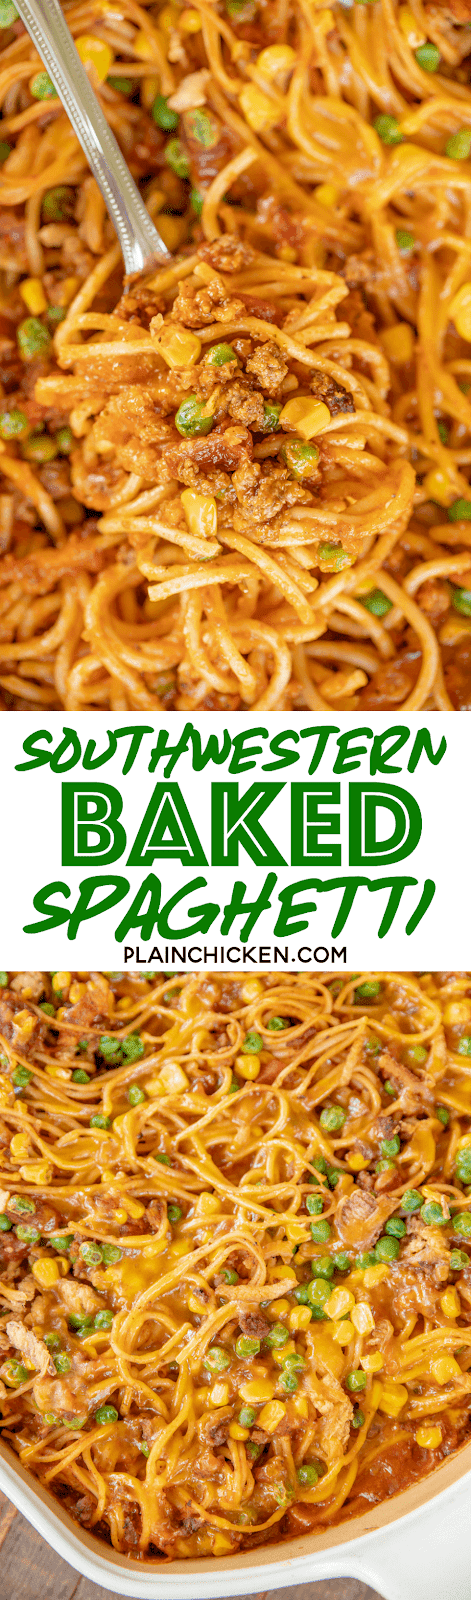 collage of two photos of baked southwestern spaghetti